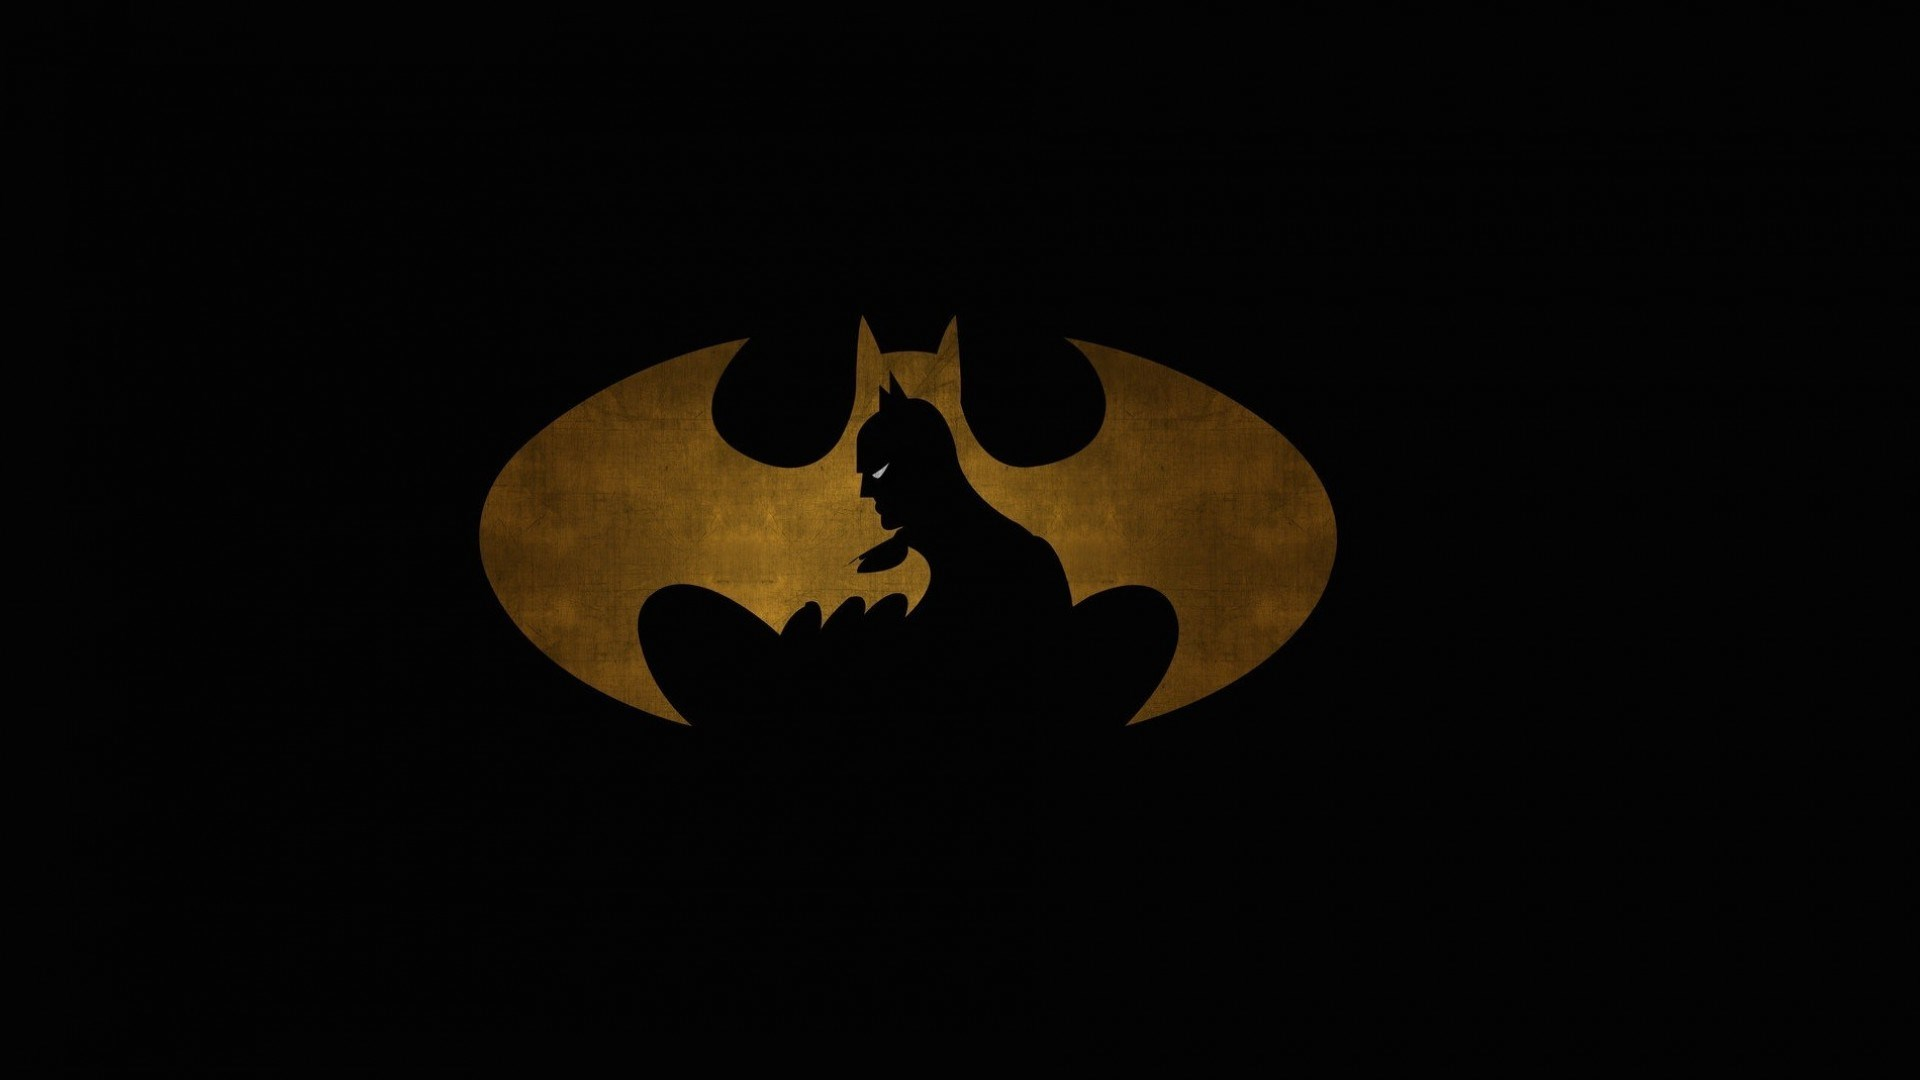 Batman Logo Wallpaper HD - WallpaperSafari